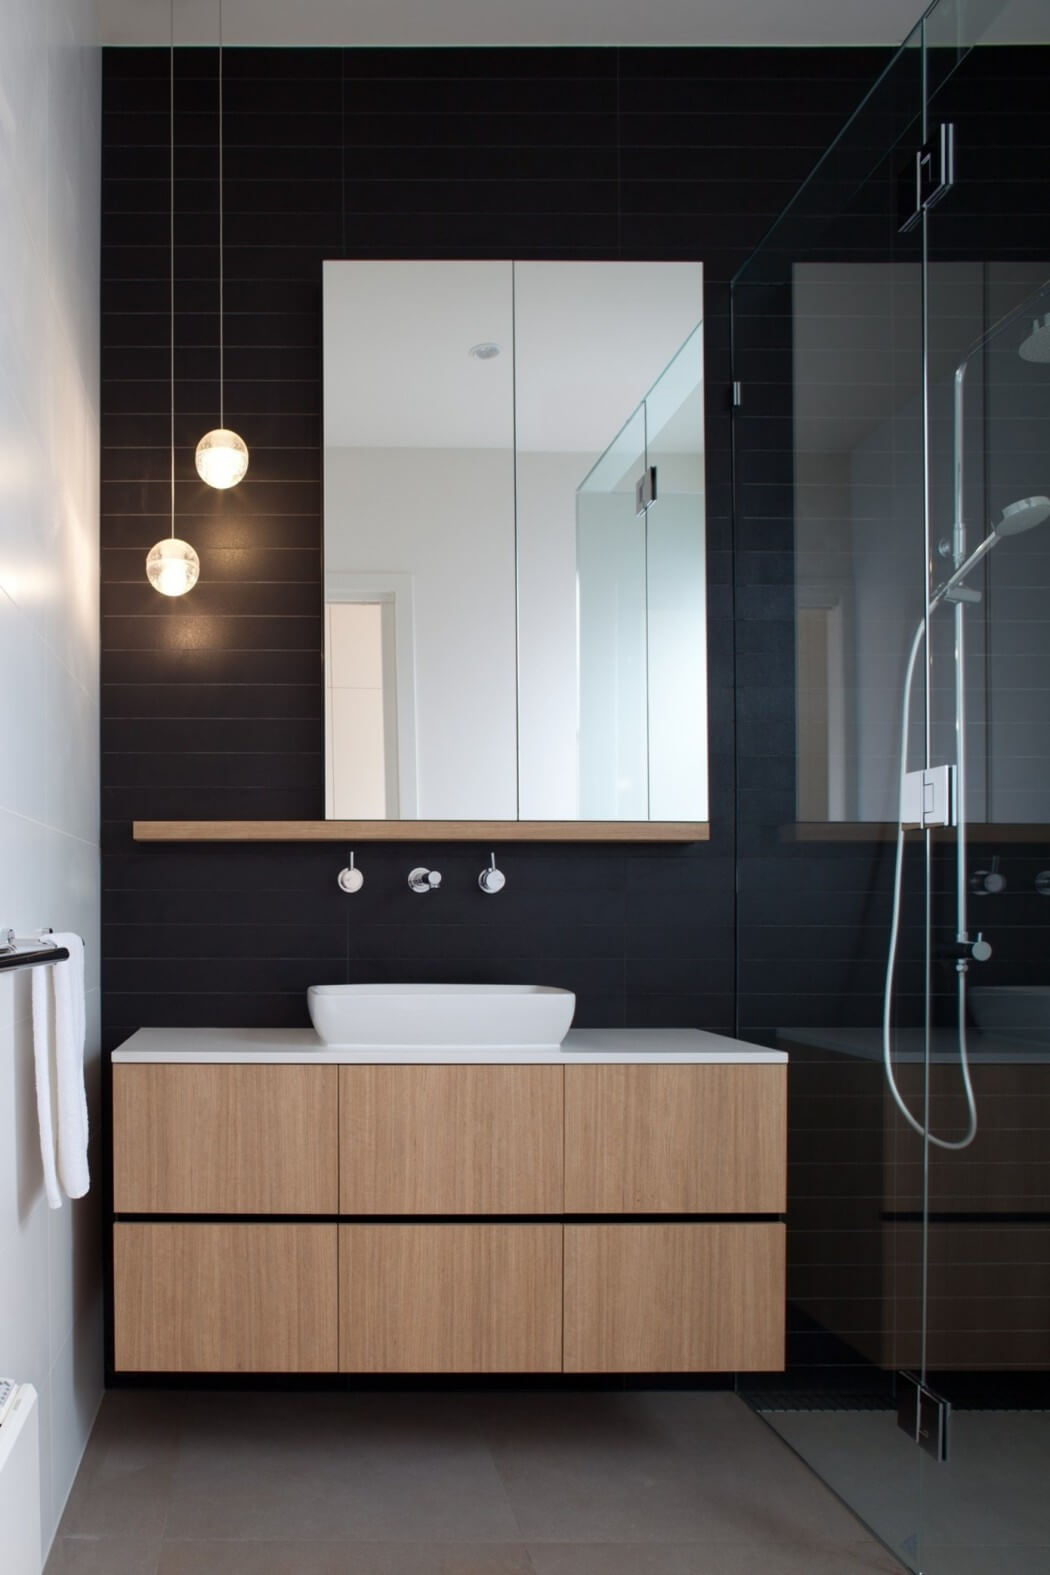 8 White Kitchens That Will Make You Say Wow: Bathroom Renovation Trends That Will Make You Say Wow